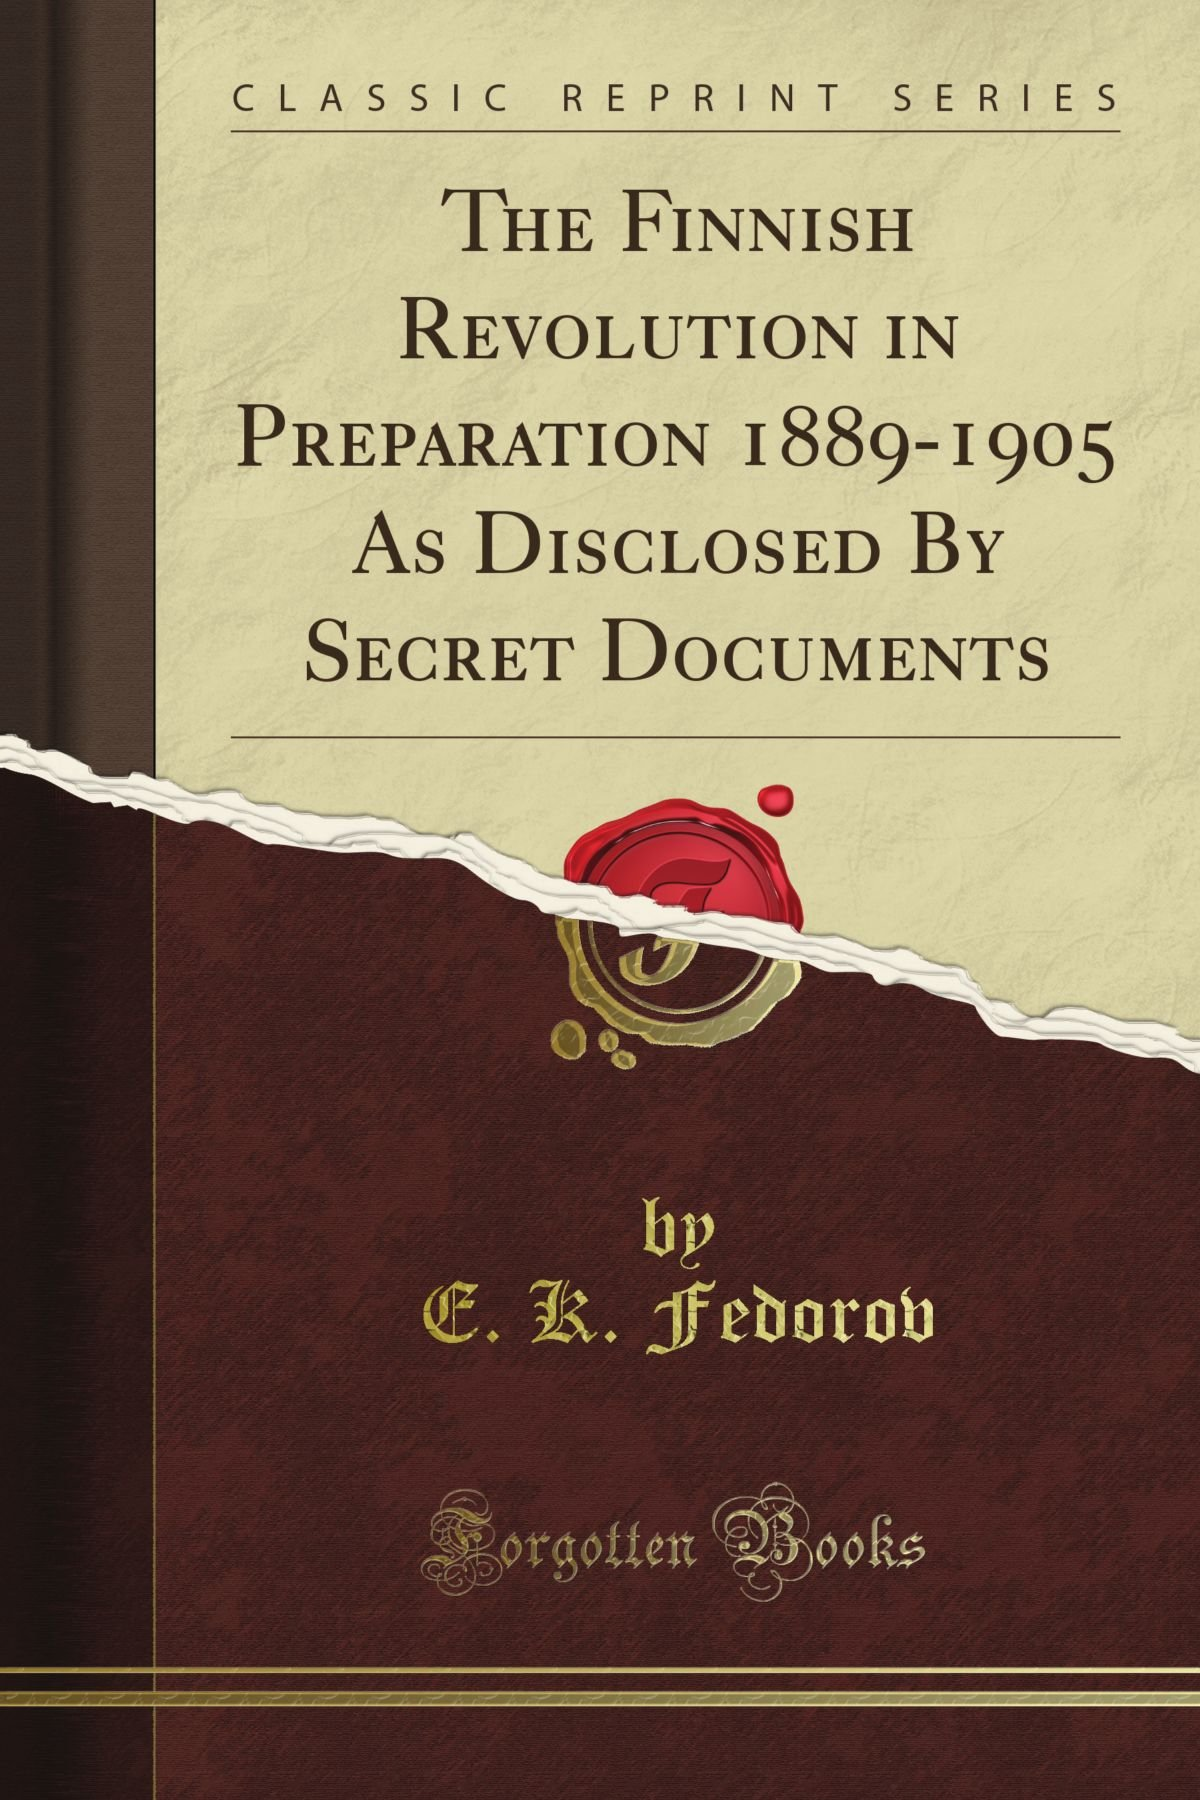 Download The Finnish Revolution in Preparation 1889-1905 As Disclosed By Secret Documents (Classic Reprint) pdf epub